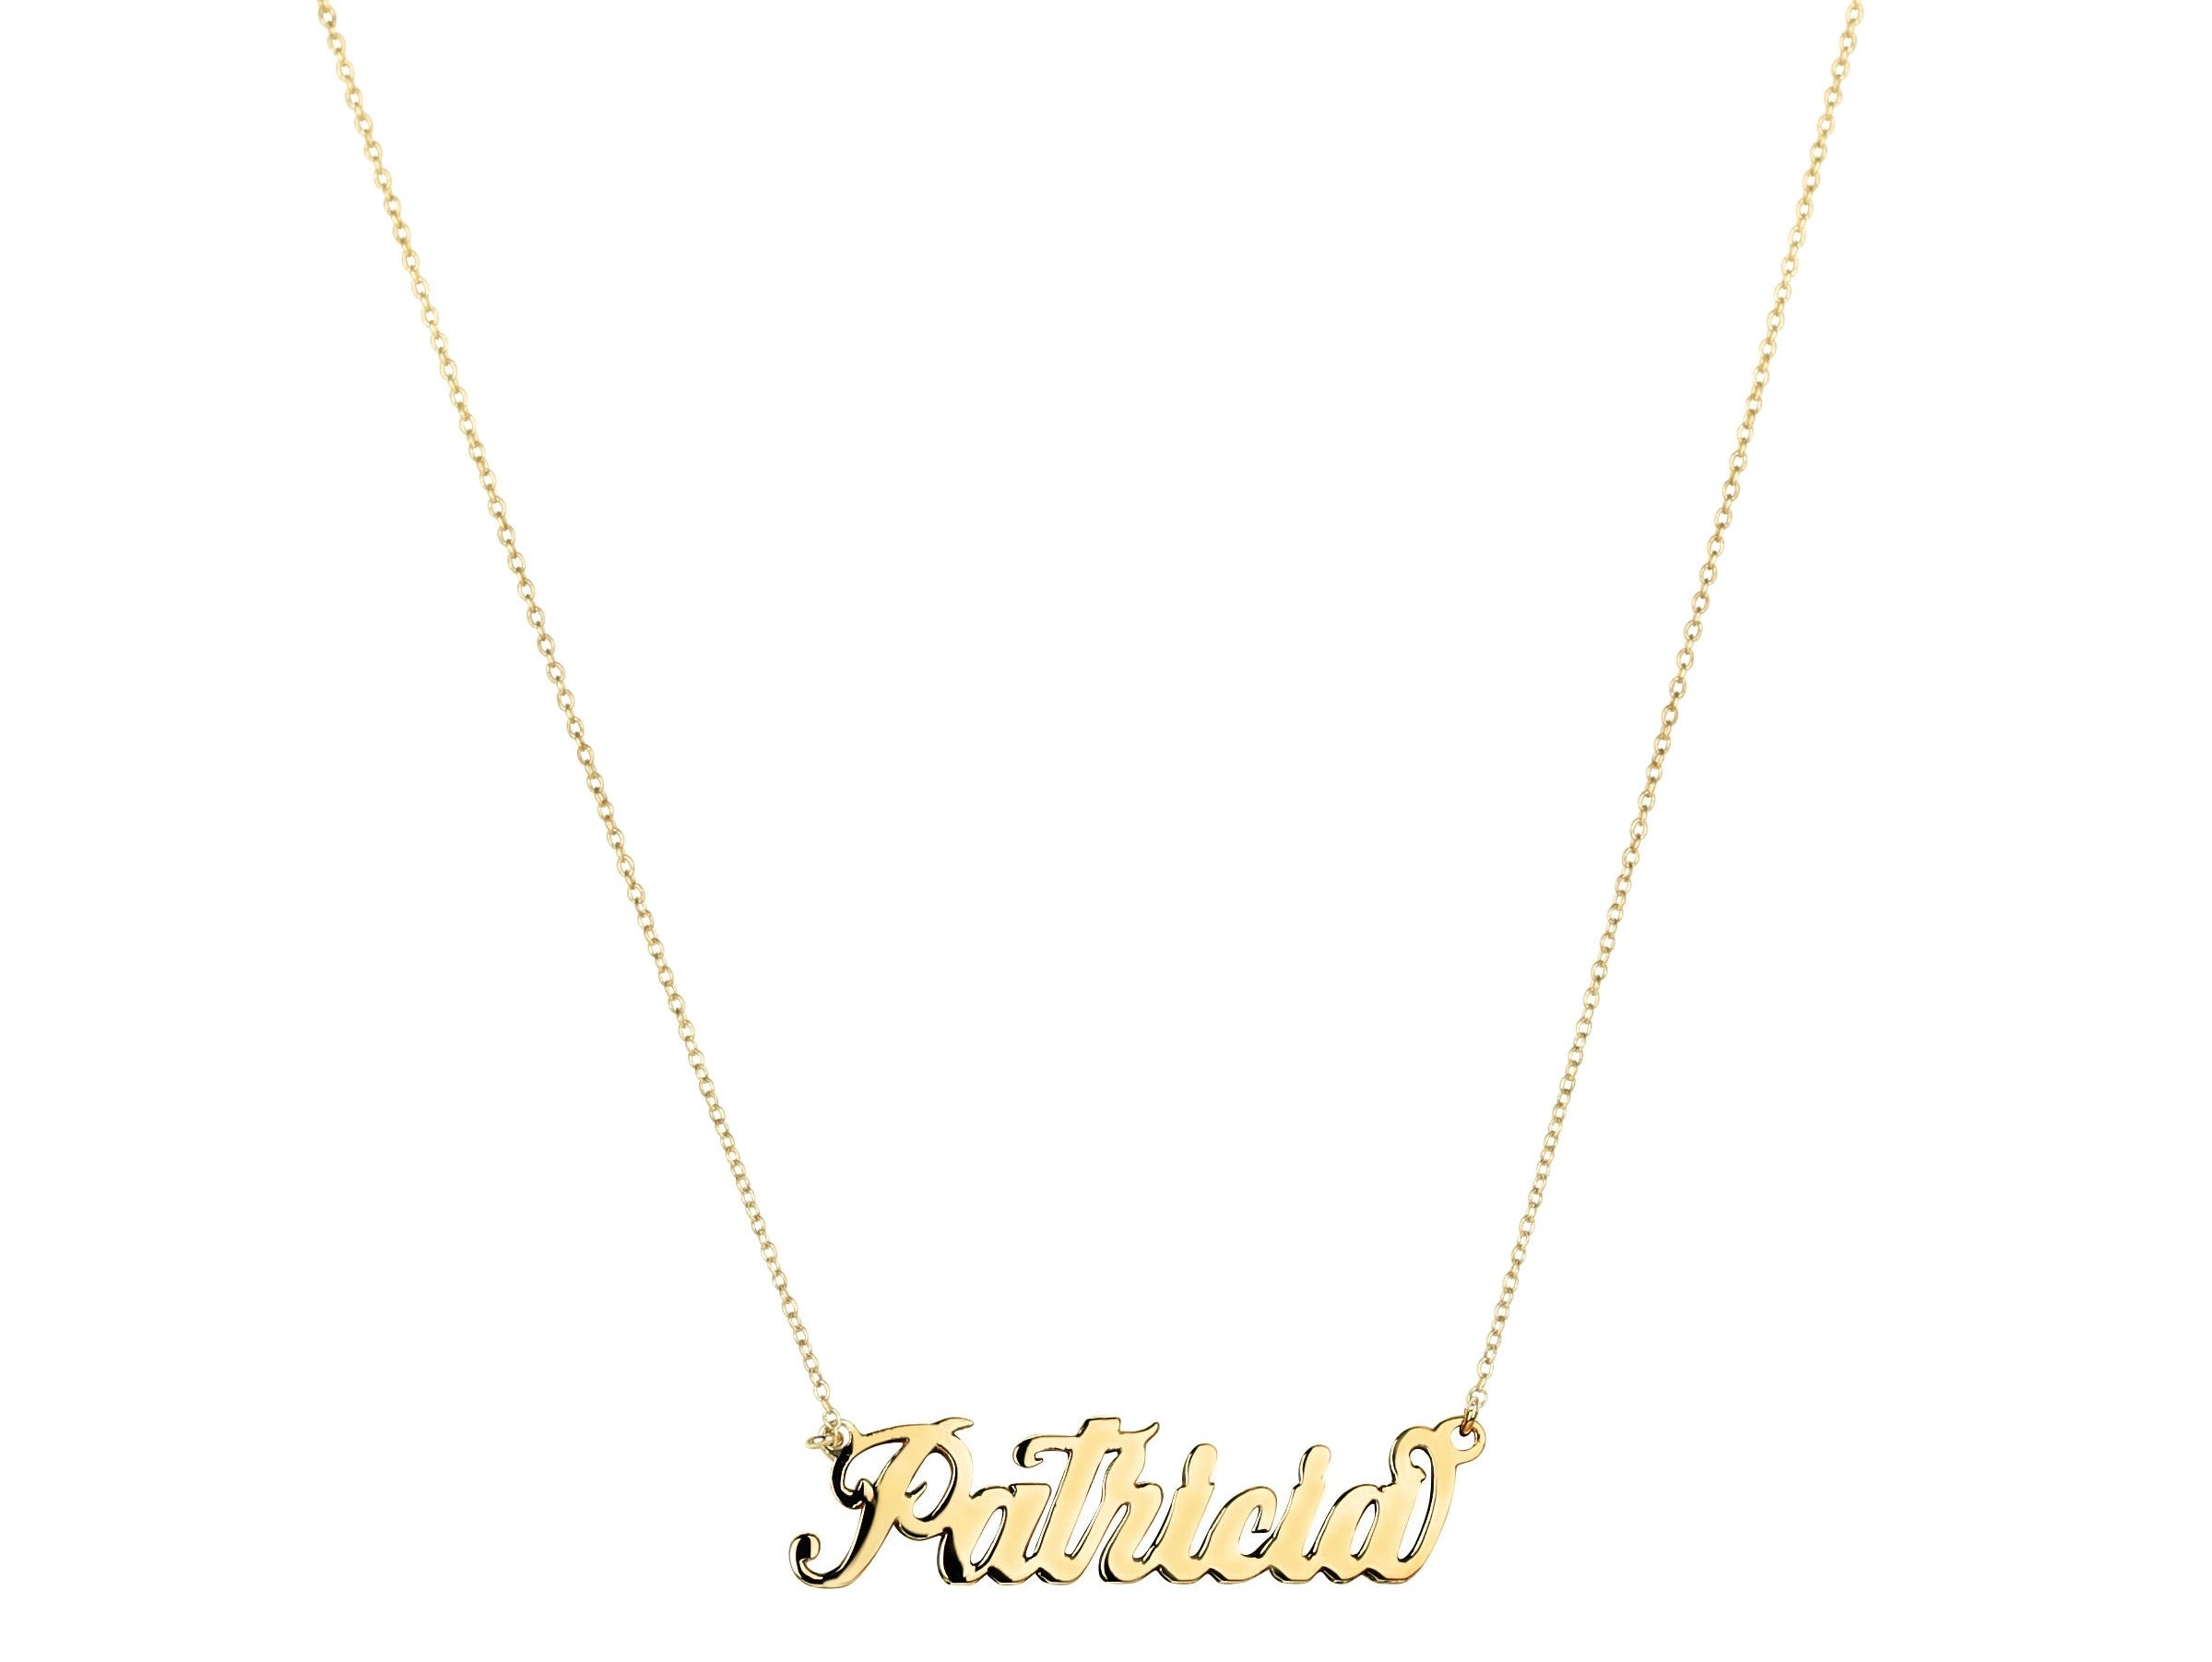 Handcrafted Name Necklace